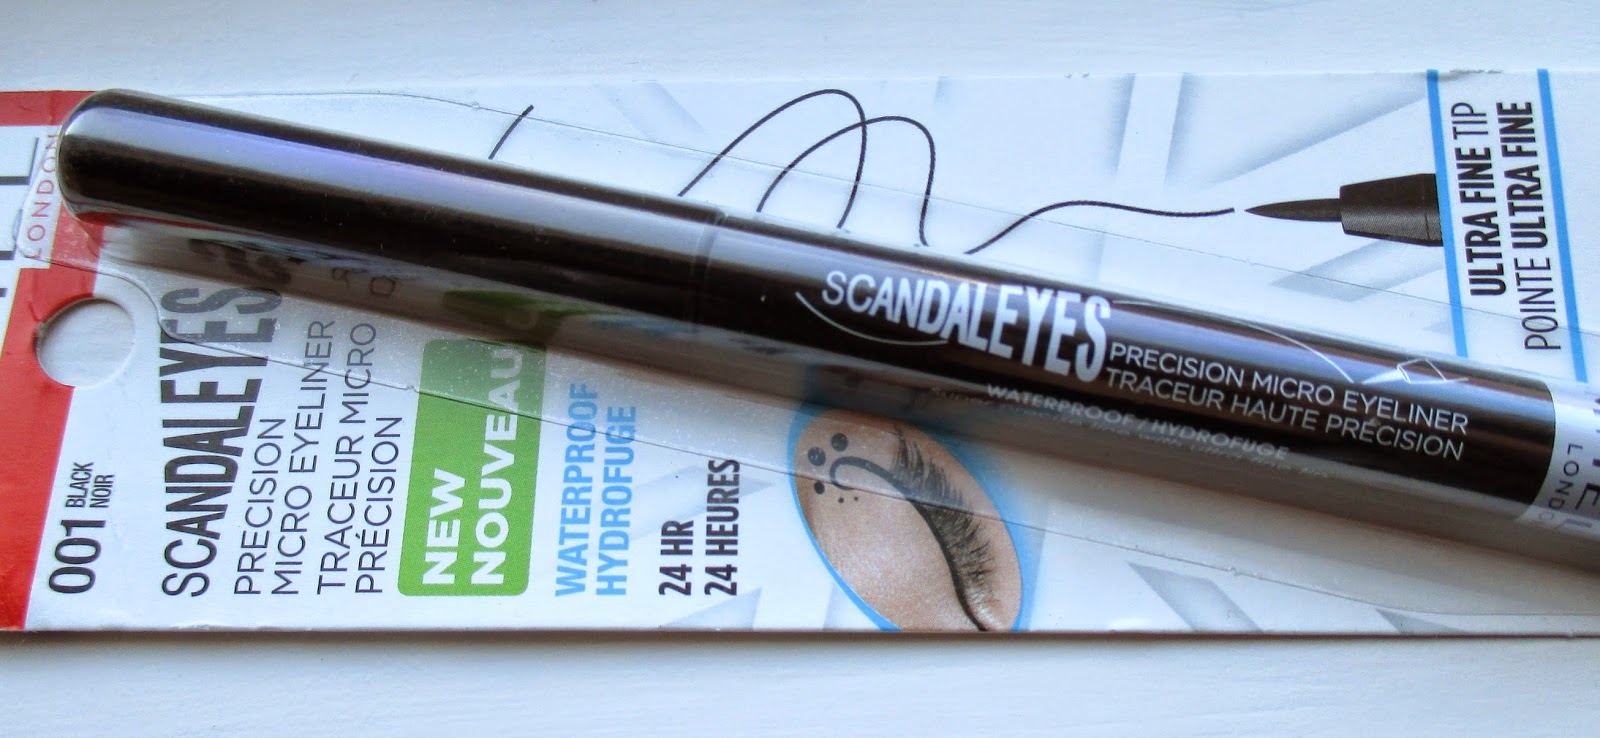 Scandal Eyes Micro Eye Liner by Rimmel